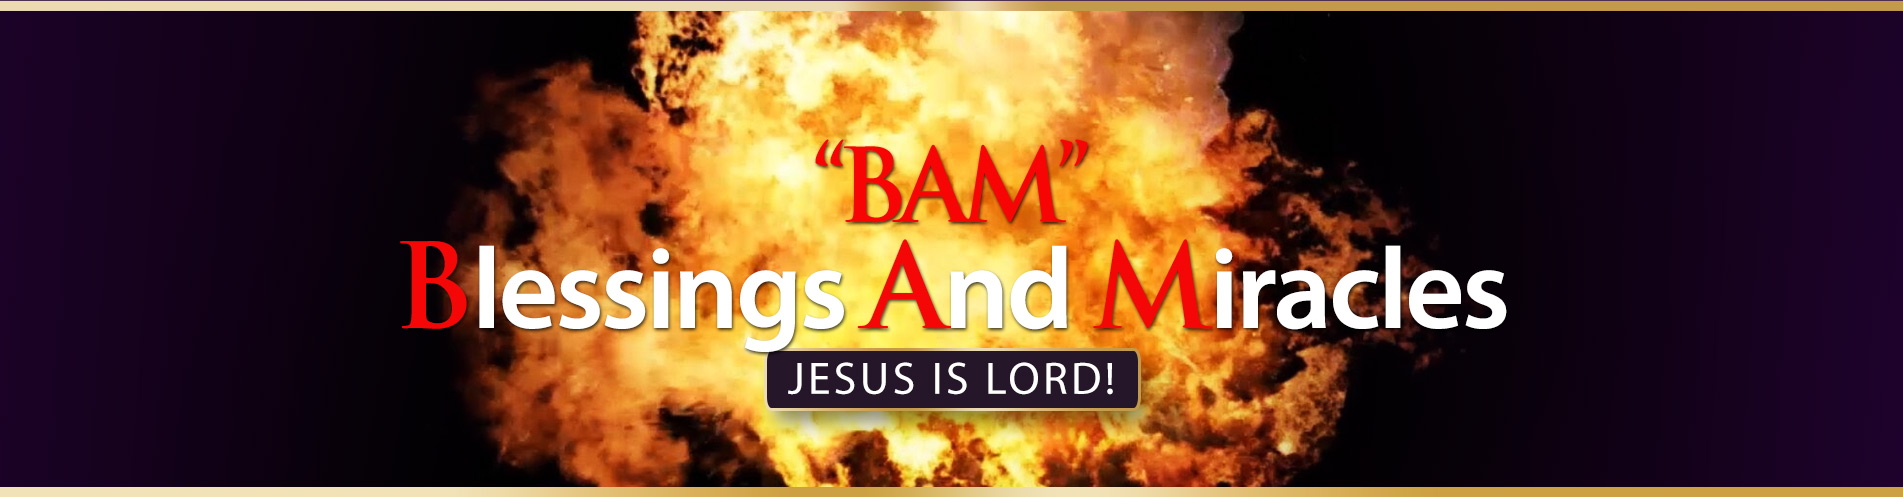 bam crawford ministries blessings and miracles